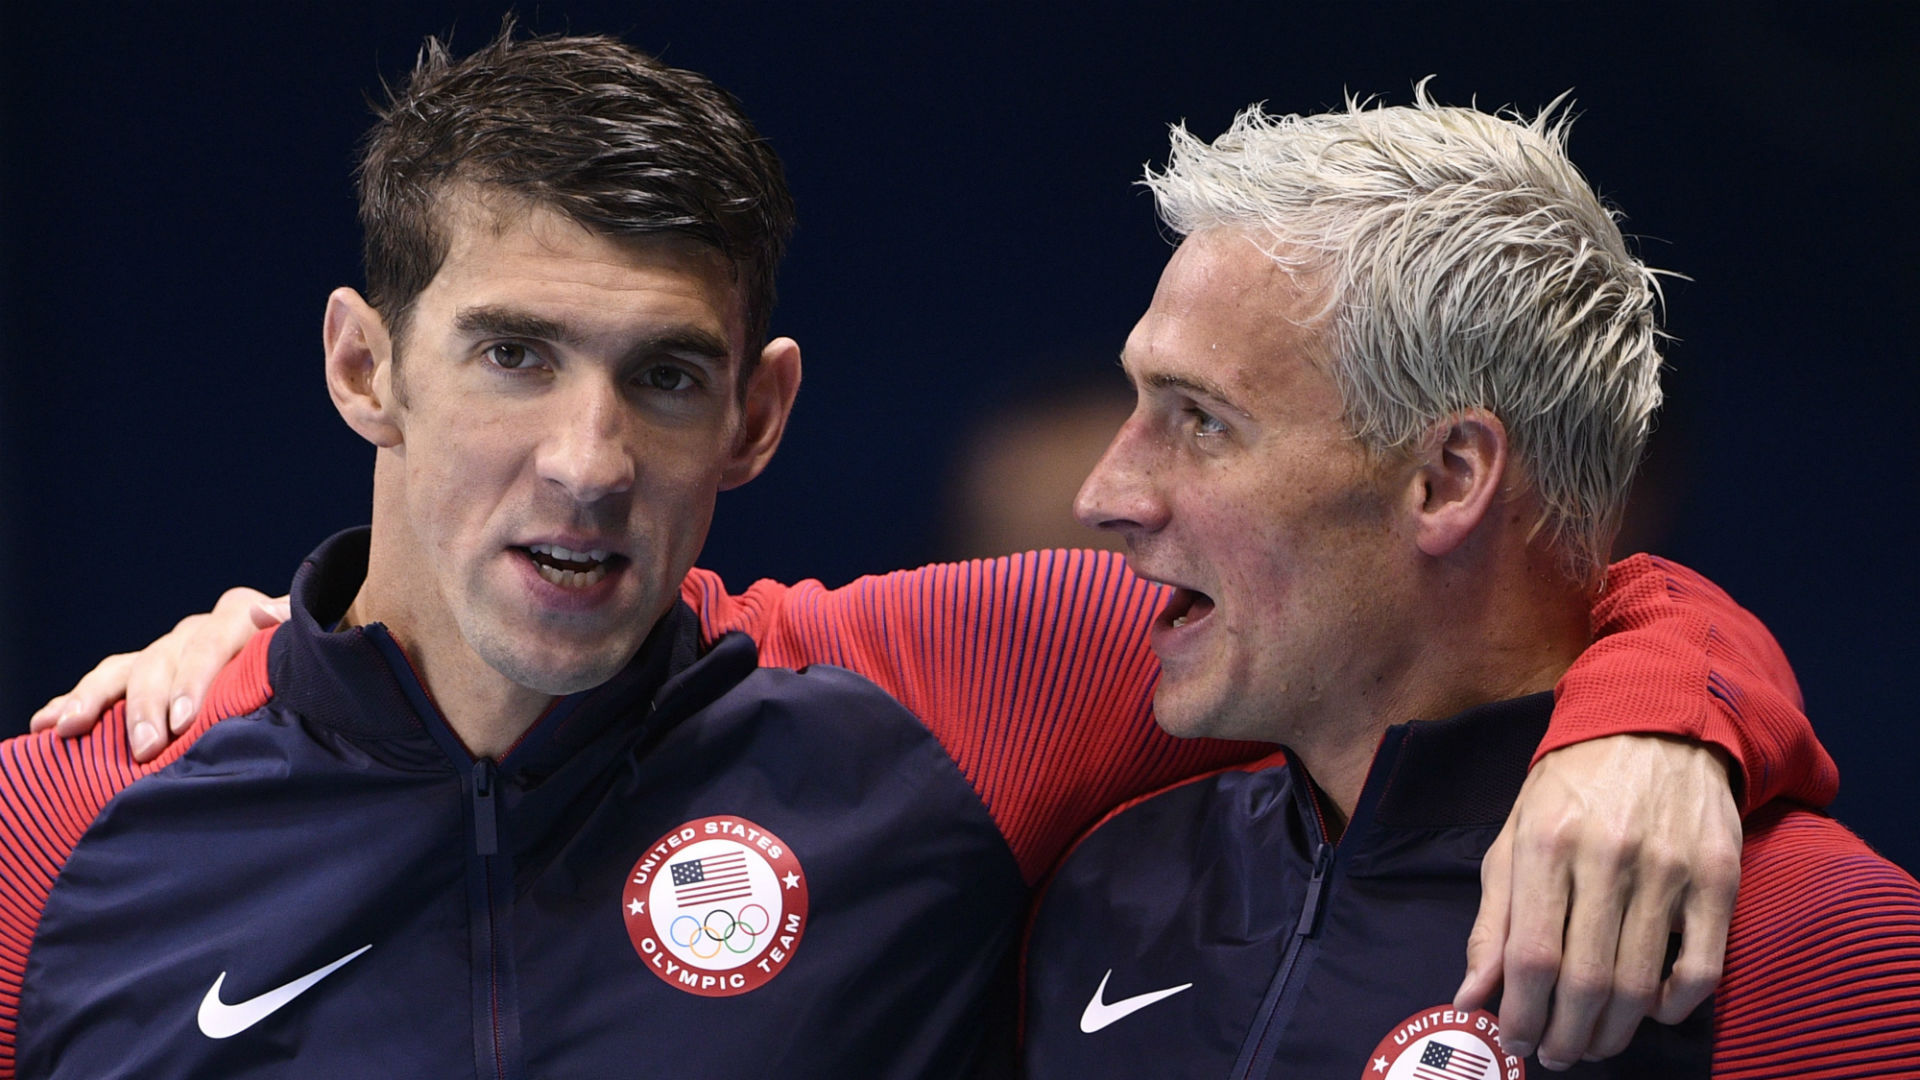 Rio Olympics 2016 Ryan Lochte Prepares For Rivalry Race With Michael Phelps